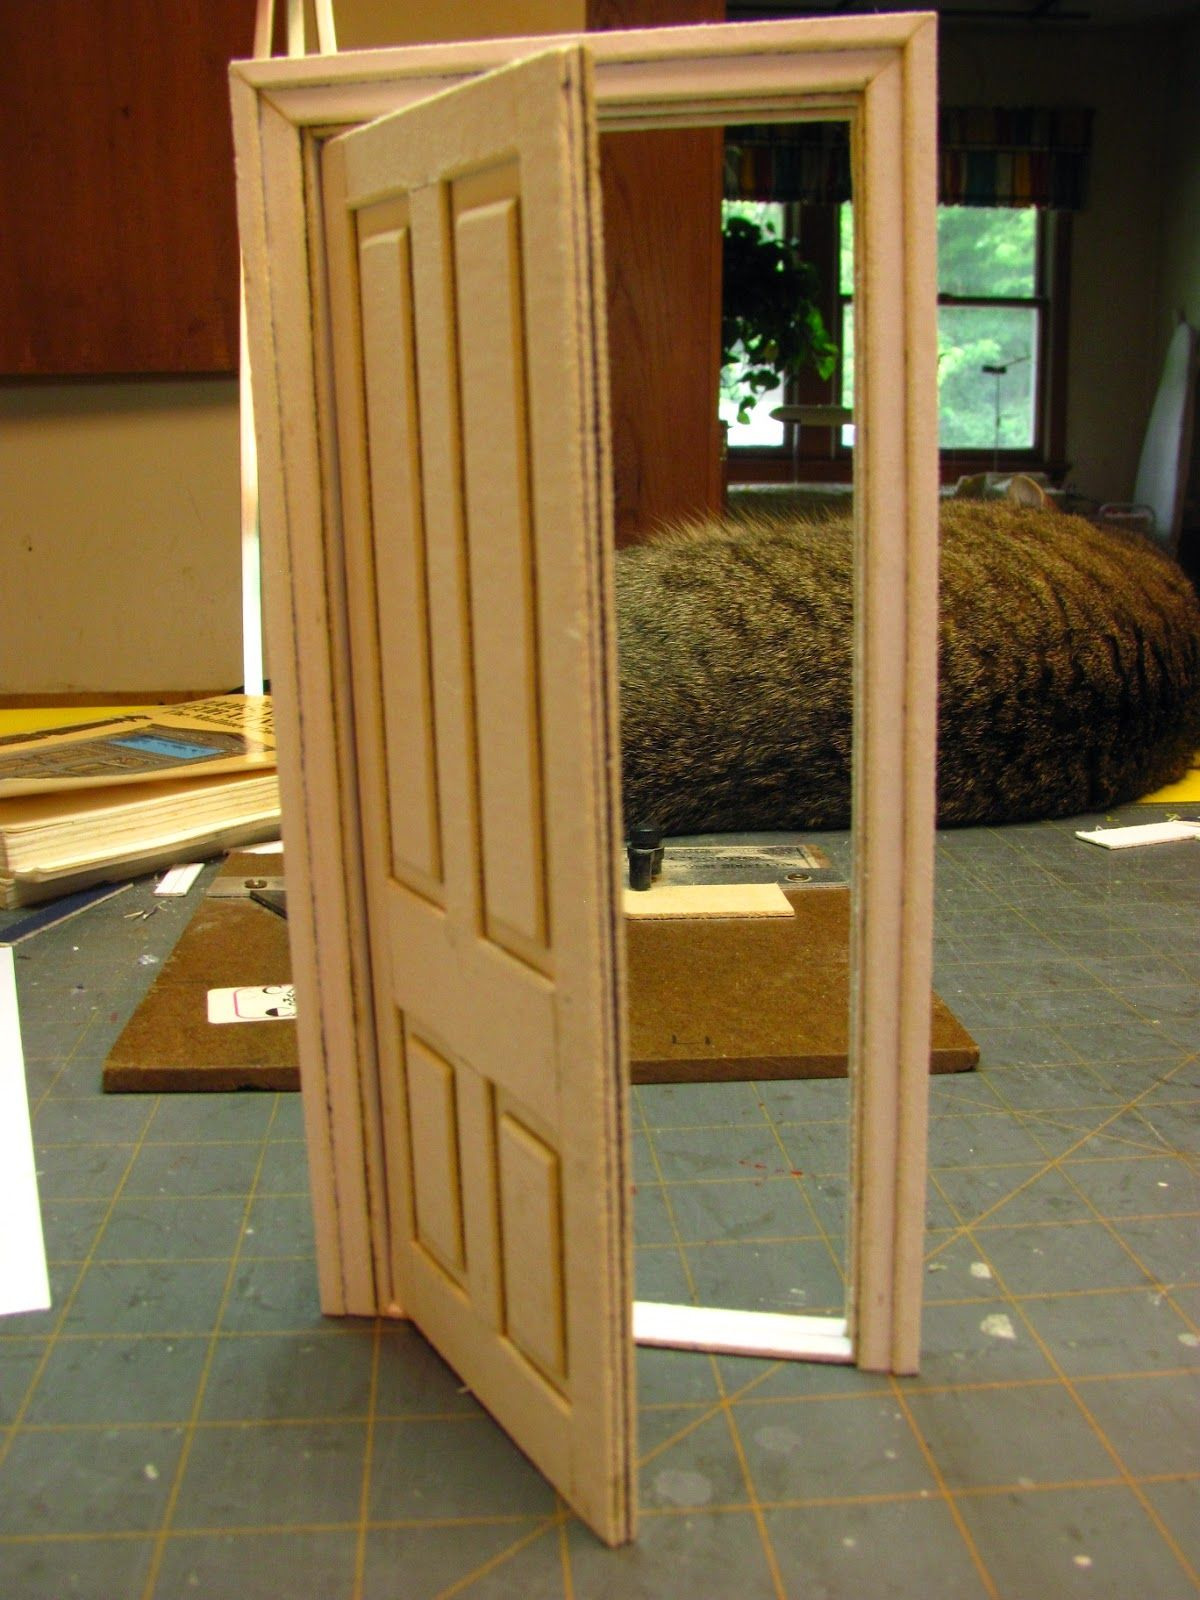 How To Make A 1 Inch Scale Dollhouse Interior Door And Jamb From Mat